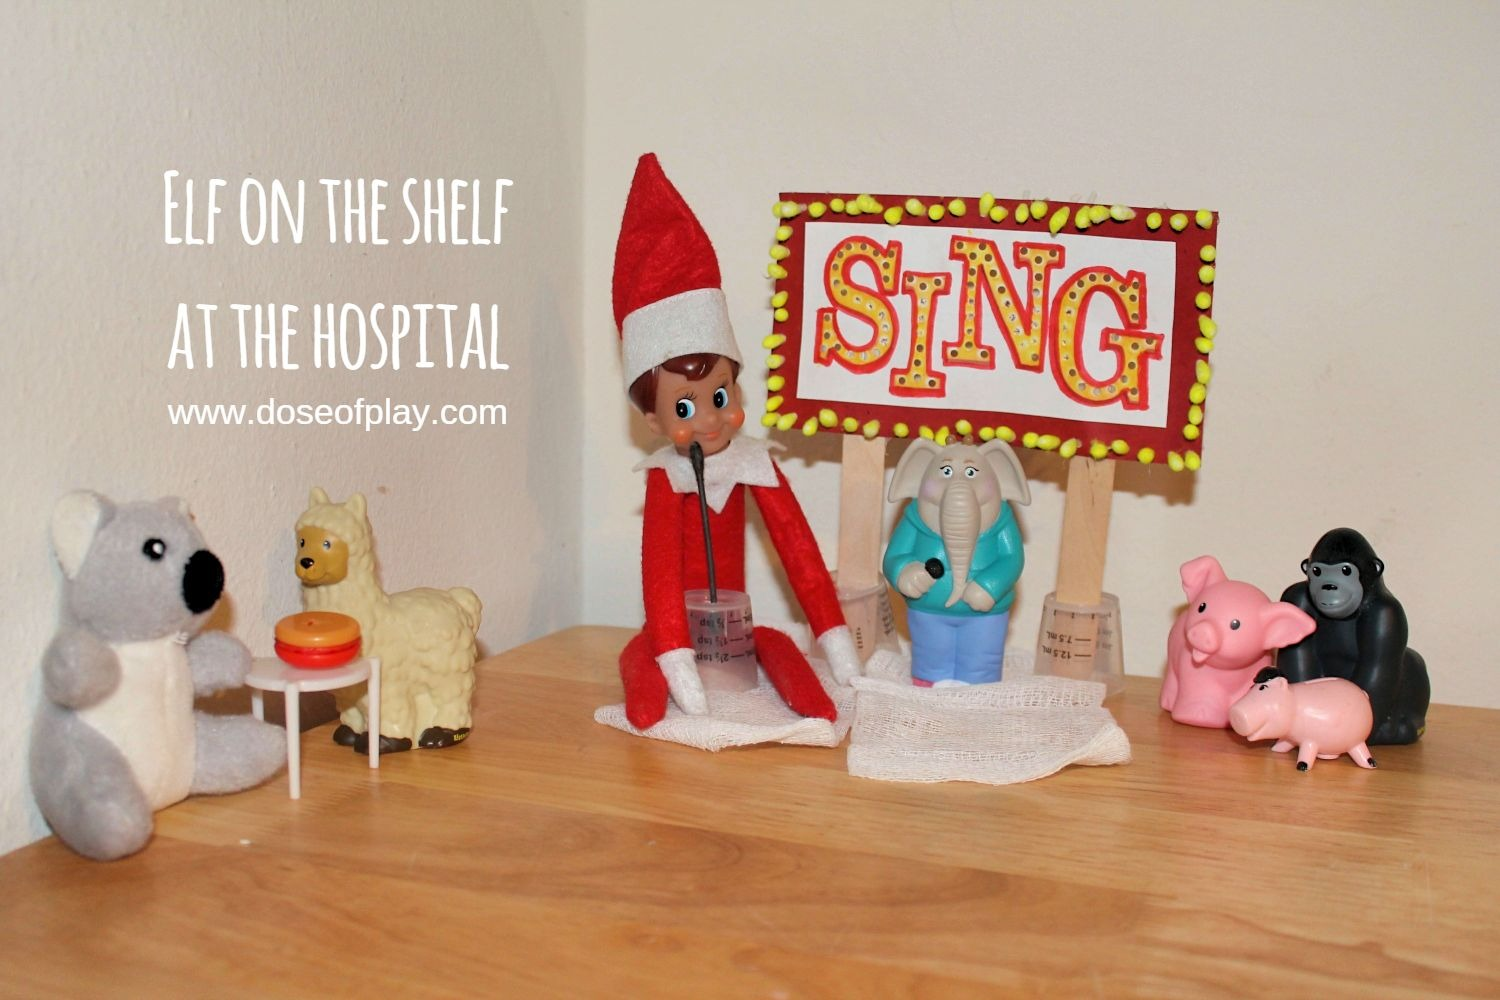 "Elf on the Shelf in the hospital! Create a ""SING"" movie audition using medical items and toys from the hospital playroom! #elfontheshelf #medicalplay #elfontheshelfideas #doseofplay #pediatrics #childlife #childlifespecialist #hospitalfun #holidaytraditions"